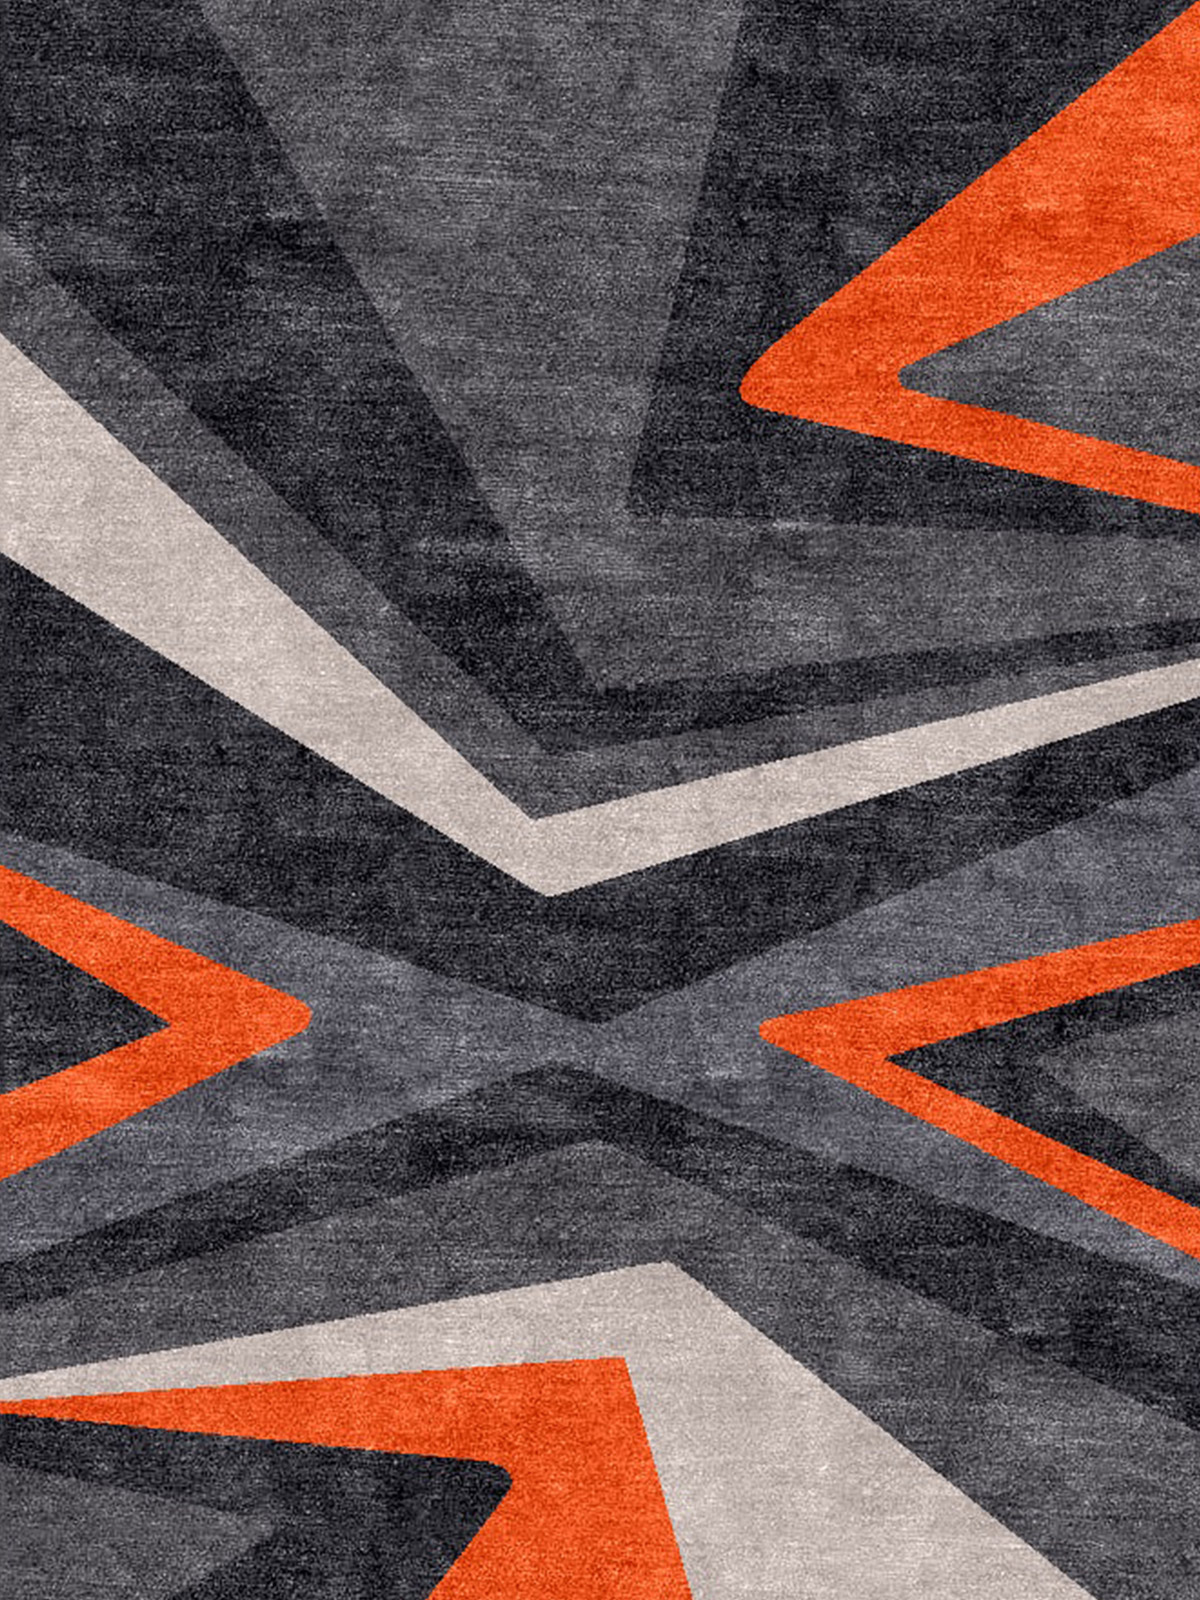 Starburst Grey Orange Bold And Modern This Statement Rug Is Bursting With Energy